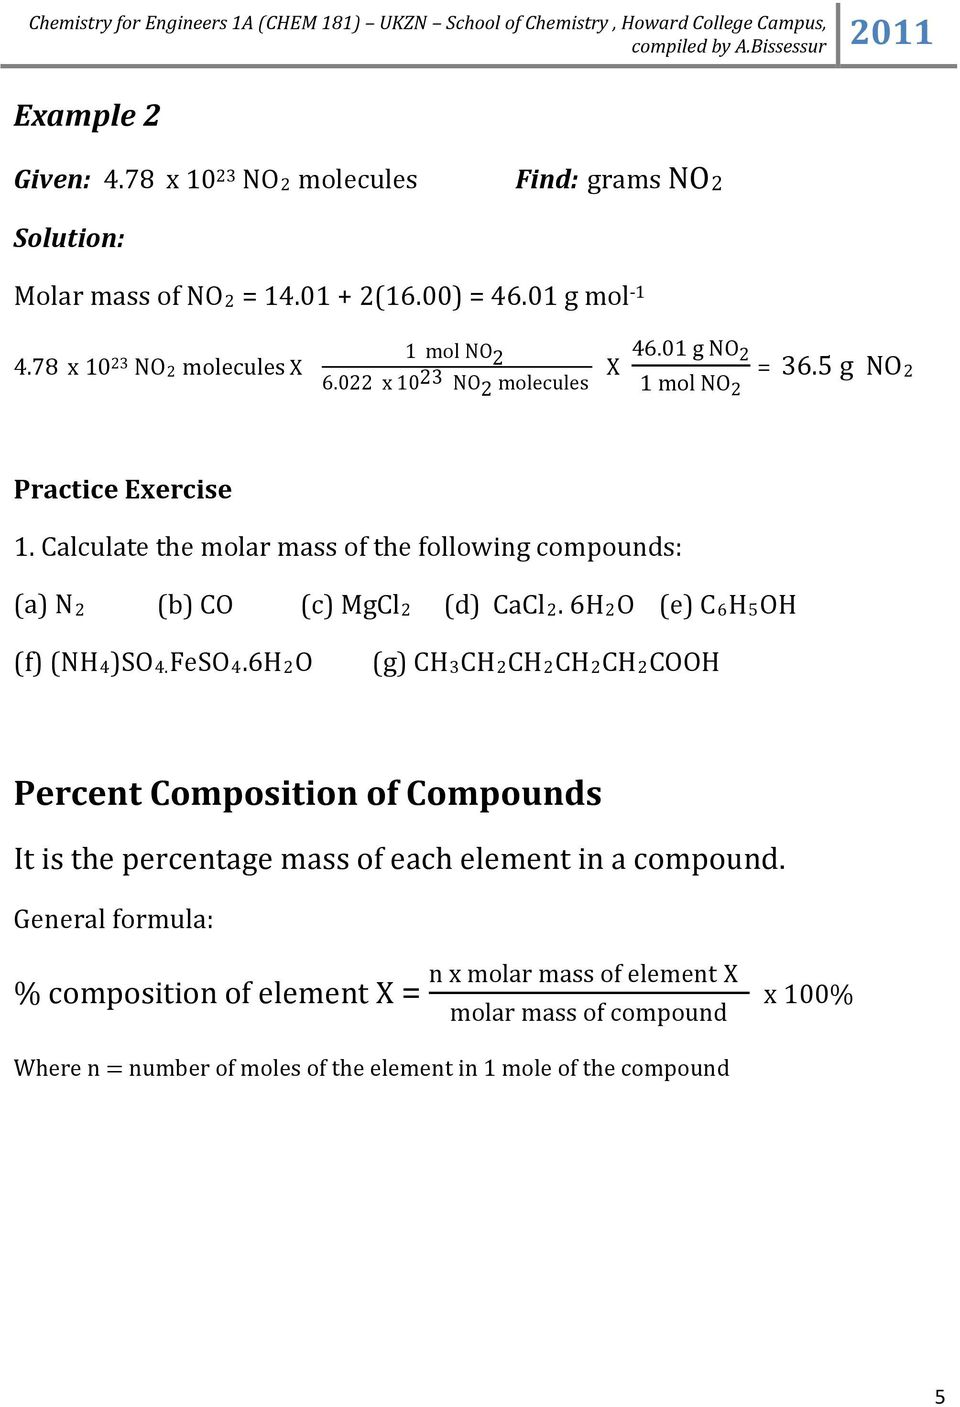 Calculate the molar mass of the following compounds: (a) N (b) CO (c) MgCl (d) CaCl. 6HO (e) C6H5OH (f) (NH4)SO4.FeSO4.